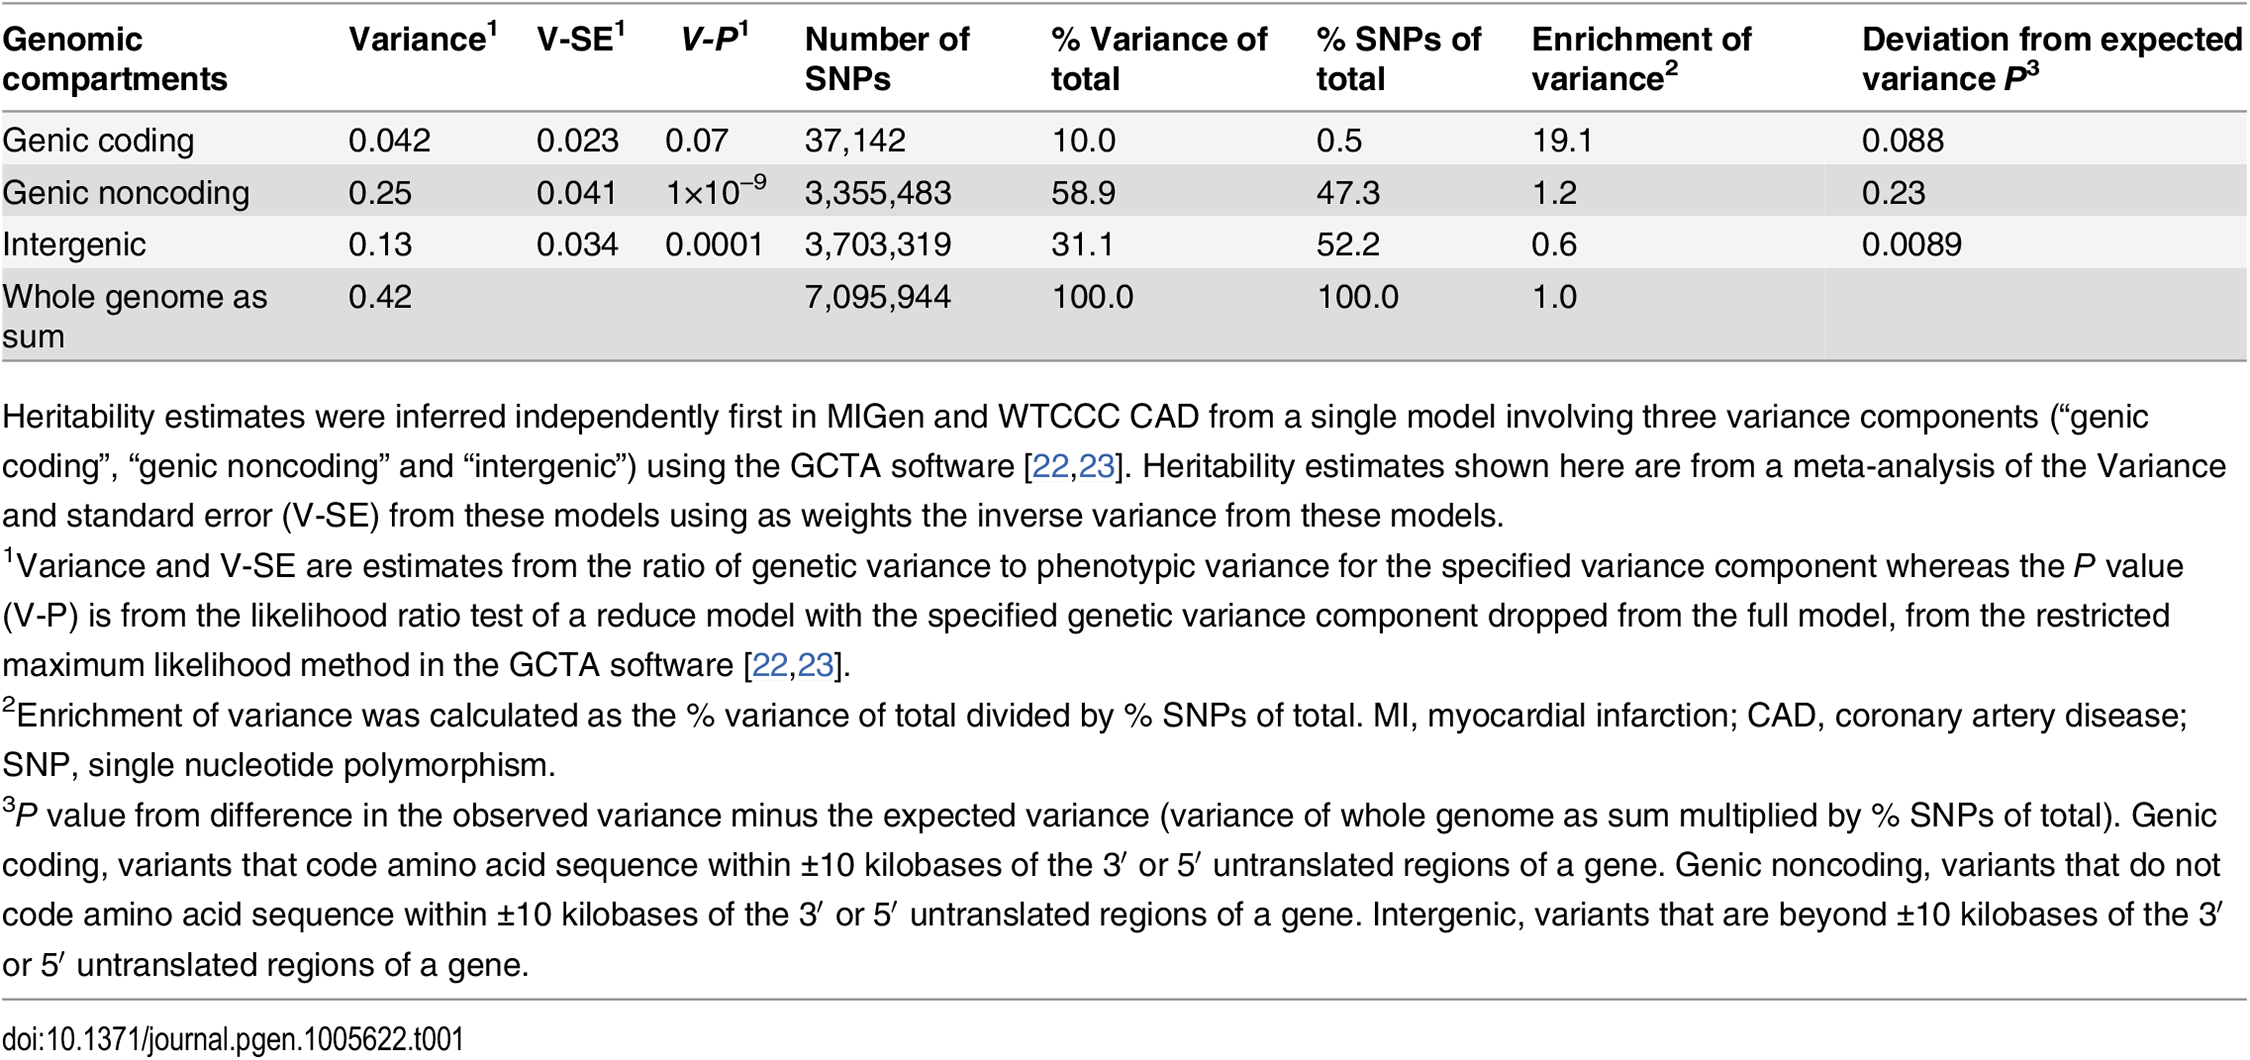 Heritability of MI/CAD explained by three genomic compartment sets.